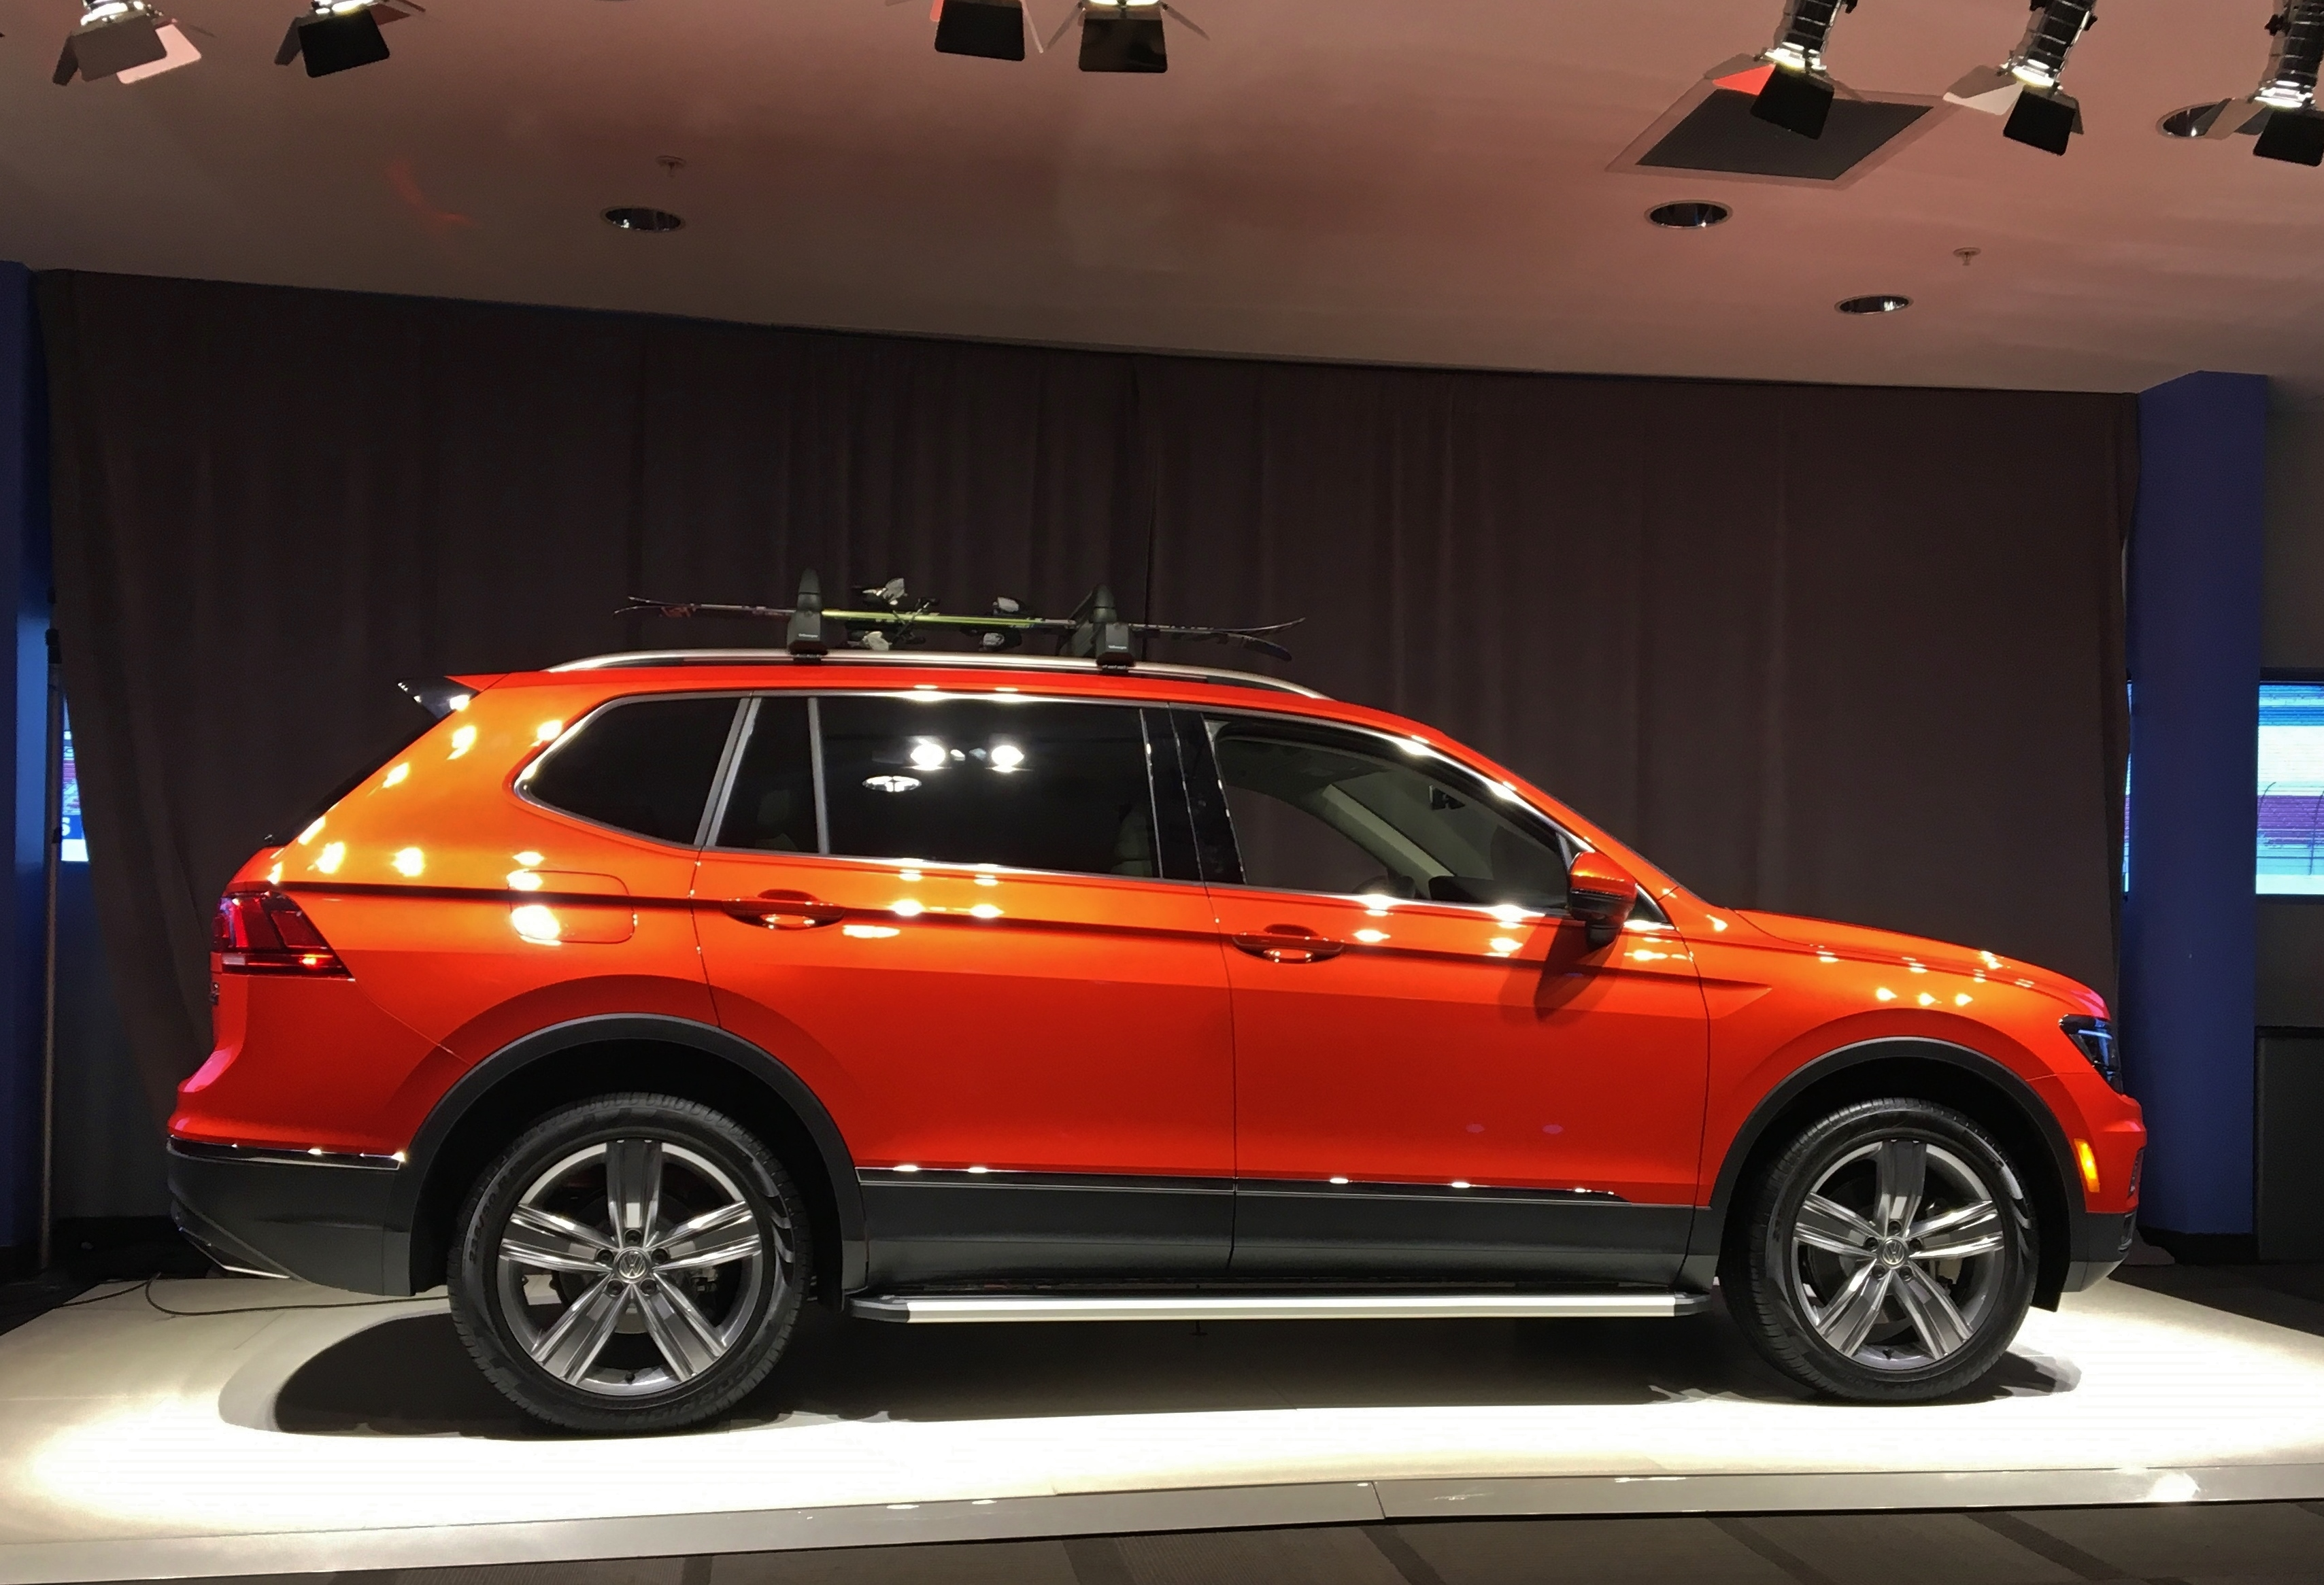 2018 Tiguan SEL Habanero Orange